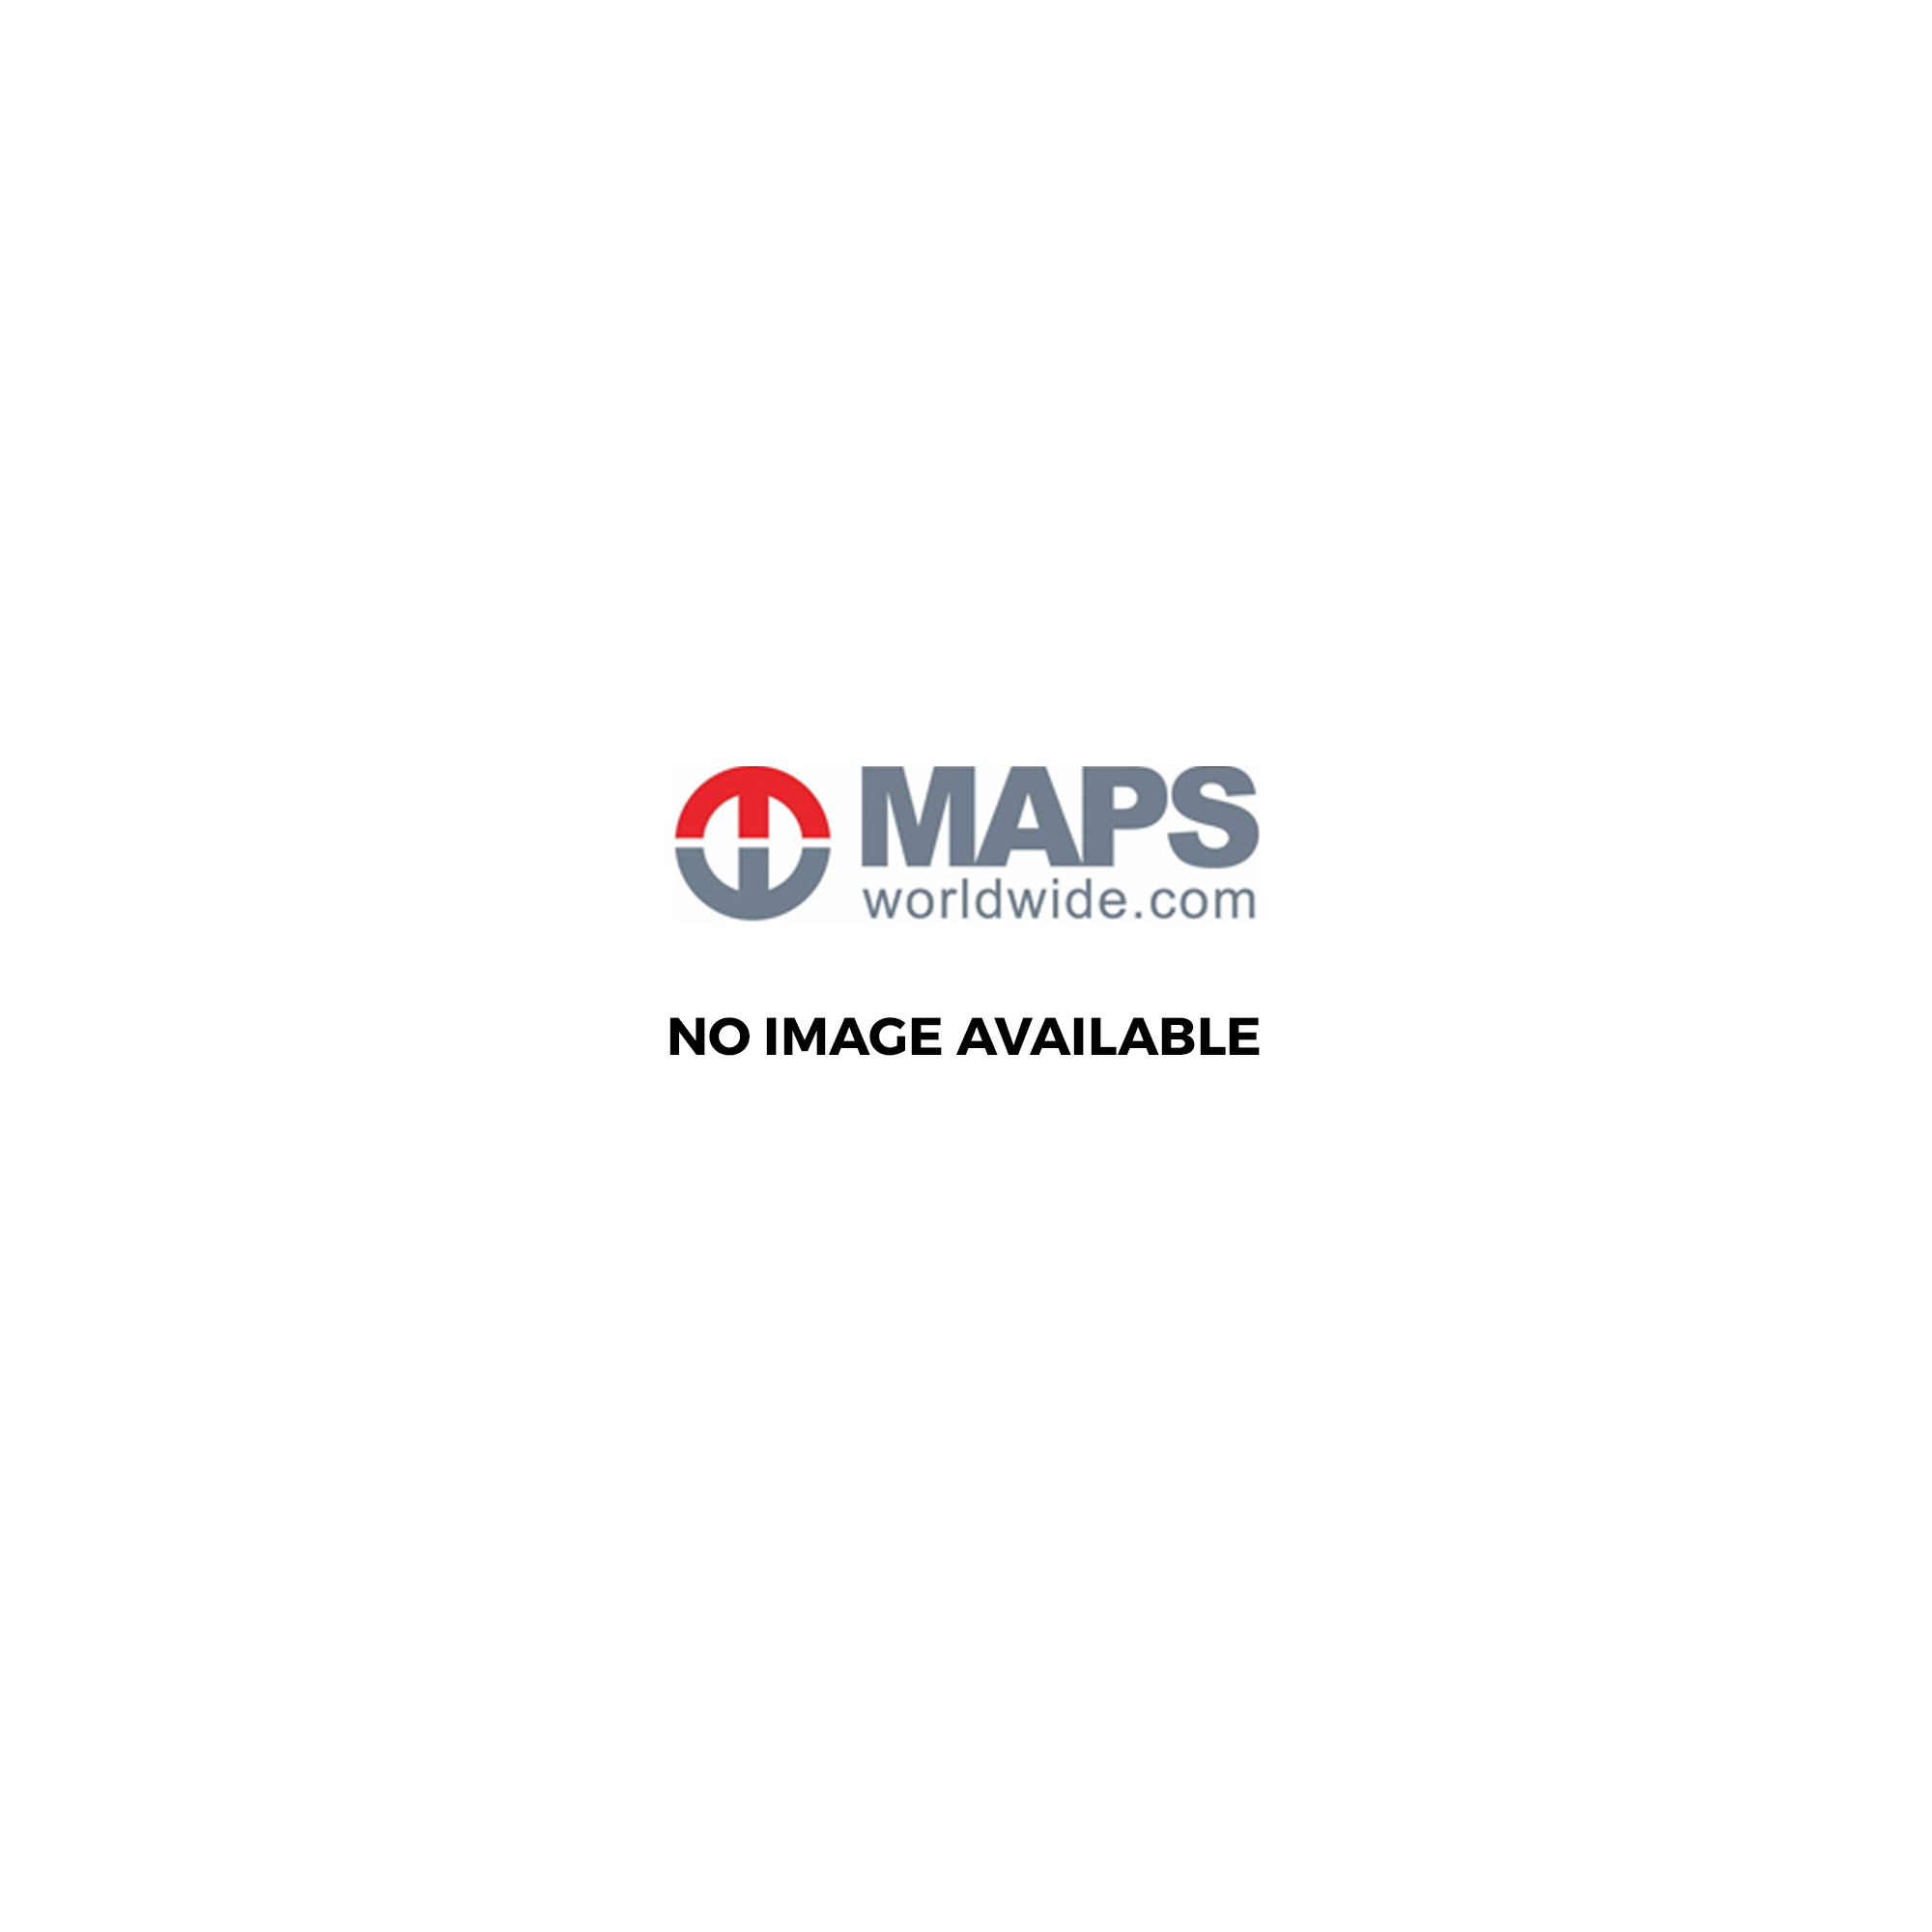 IGN map 86202 - Balearic Islands / Mallorca / Menorca / Ibiza Road ...